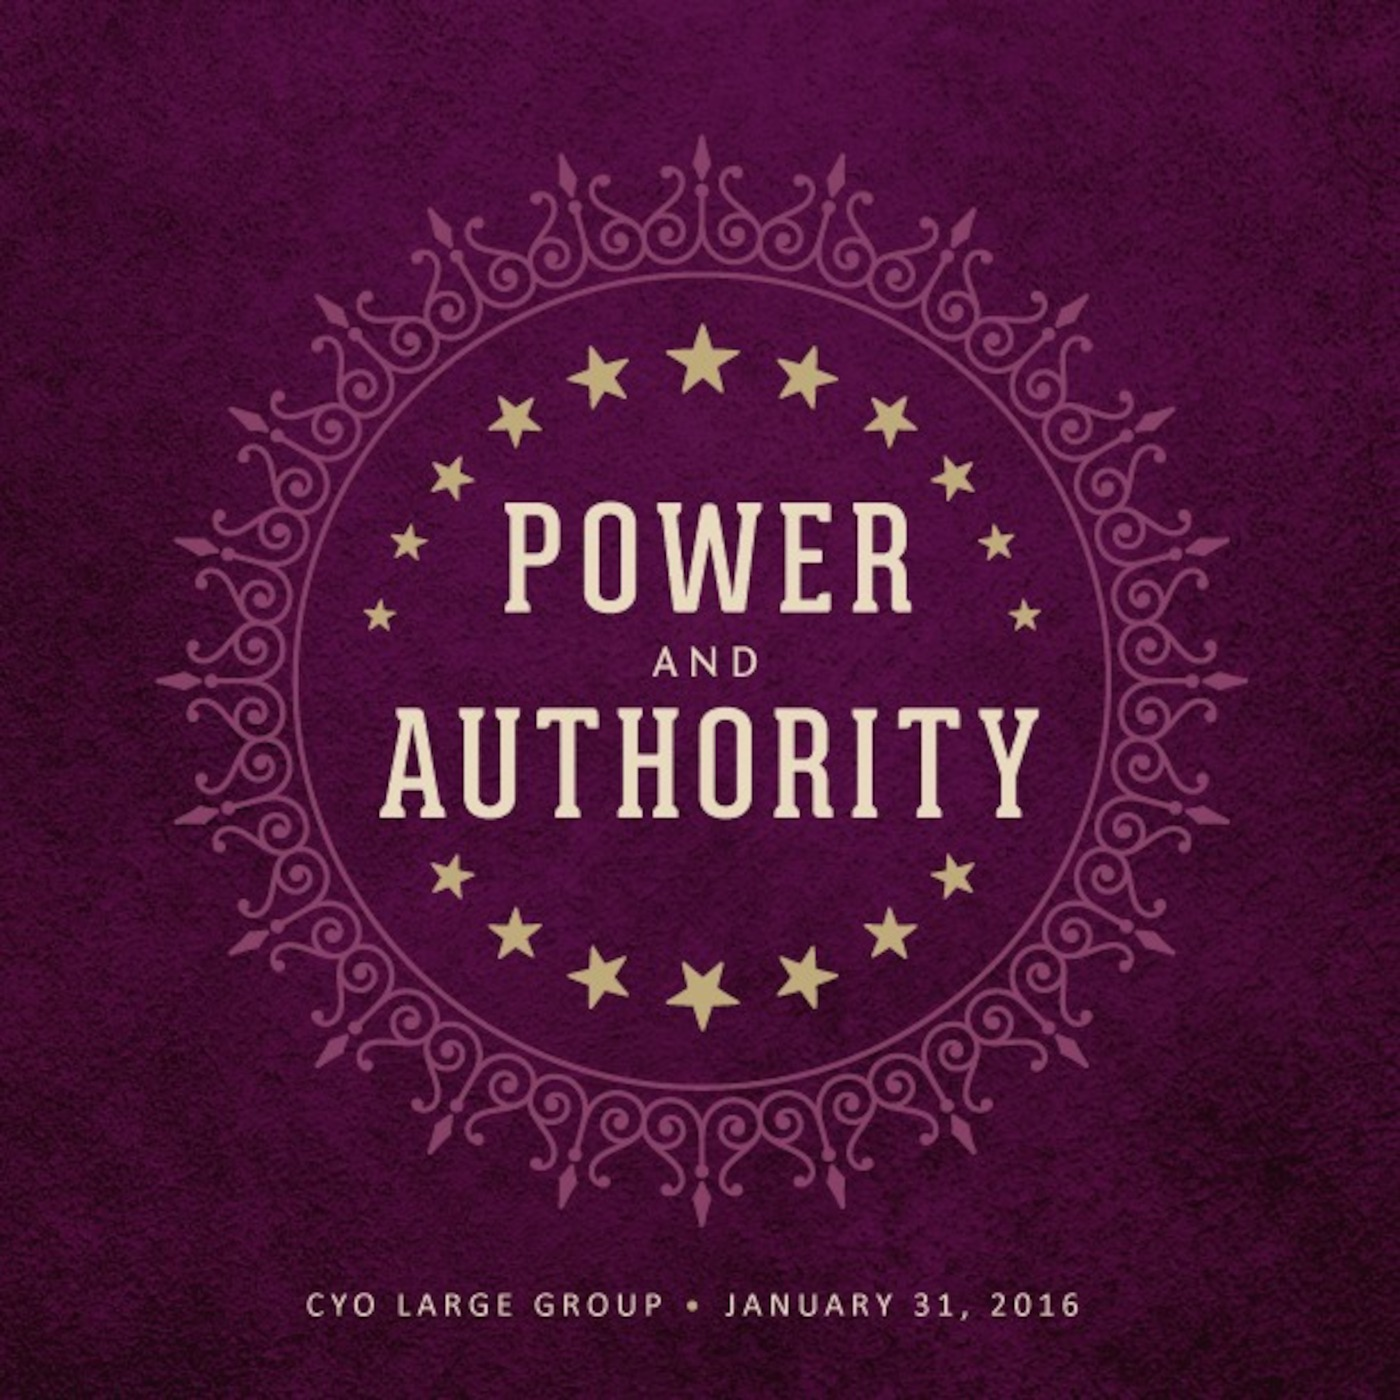 power and authority in the